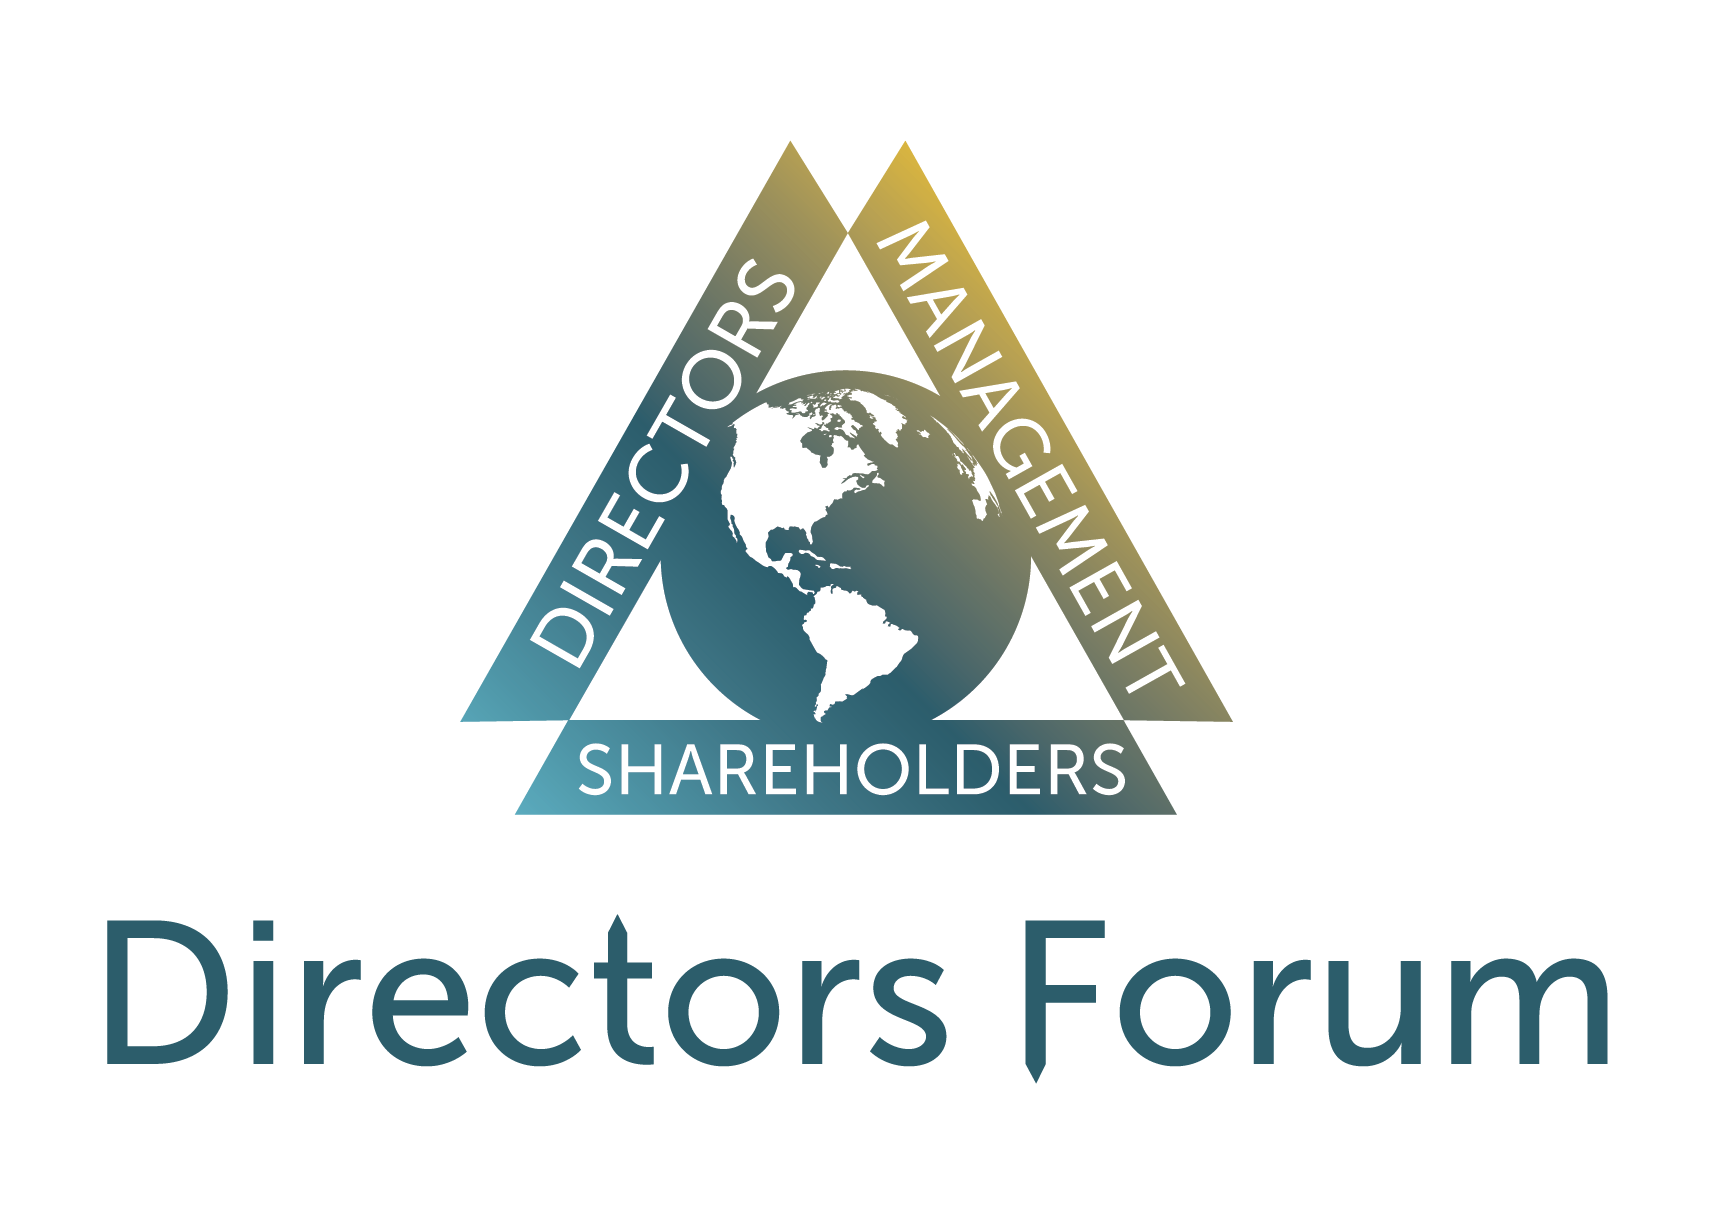 Directors Forum: Directors, Managment & Shareholders in Dialogue